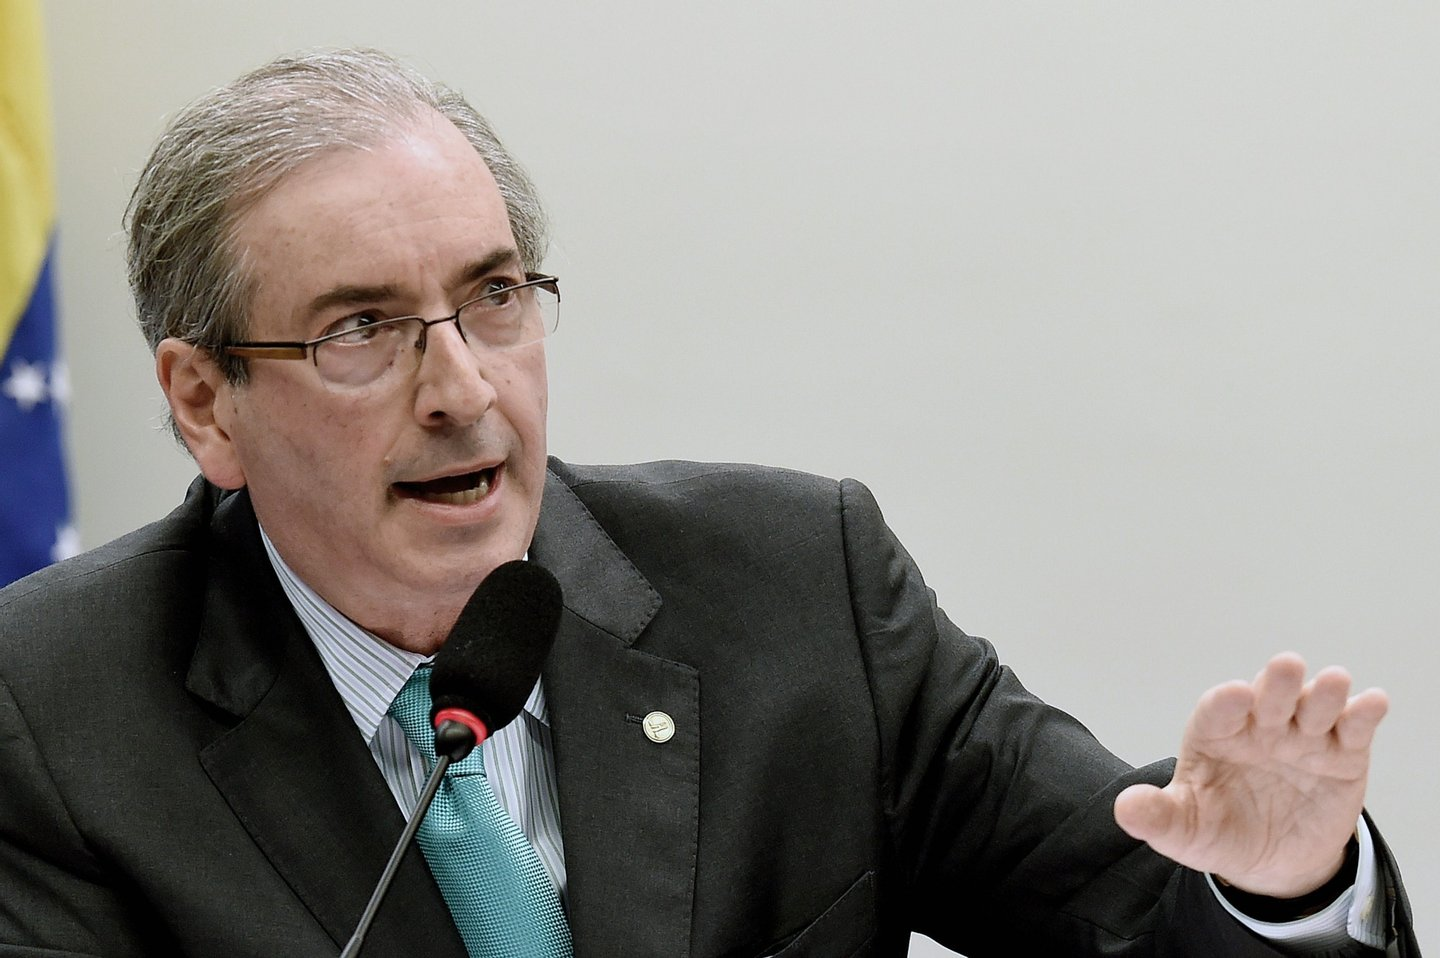 Chamber of Deputies President Eduardo Cunha of the Brazilian Democratic Movement Party (PMDB) speaks during a hearing with the Parliamentary Commission of Inquiry that investigates accusations of corruption in Petrobras, in Brasilia on March 12, 2015. Dozens of politicians from five parties, including from that of Brazilian President Dilma Rousseff, have been implicated in a corrupt network which laundered $4 billion of Brazil's state oil giant money. AFP PHOTO/EVARISTO SA        (Photo credit should read EVARISTO SA/AFP/Getty Images)